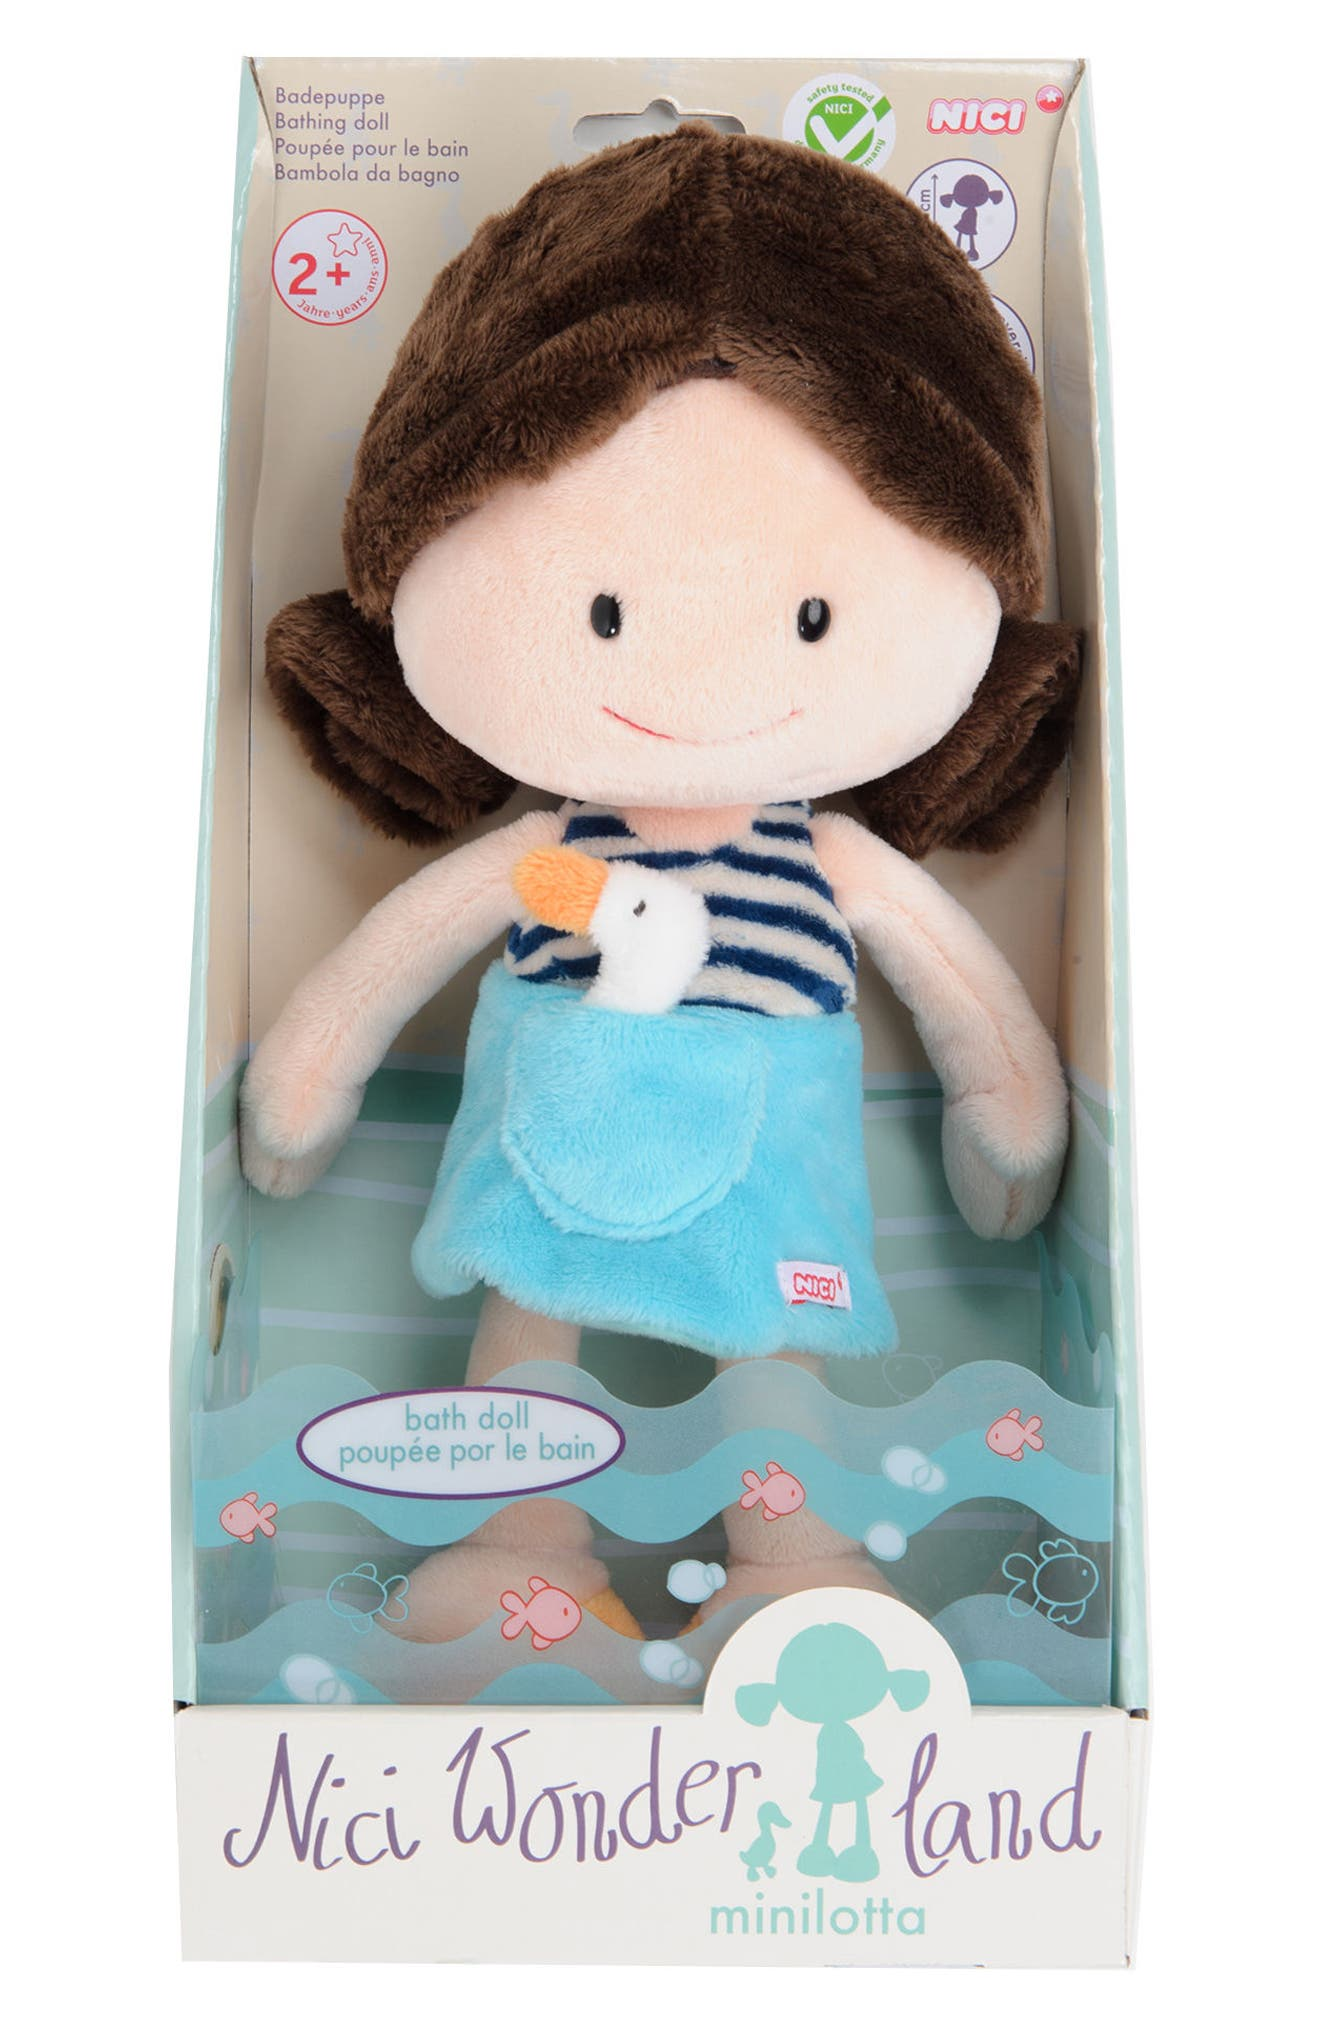 Neat Oh! Nici® Wonderland Minilotta the Bathing Plush Doll